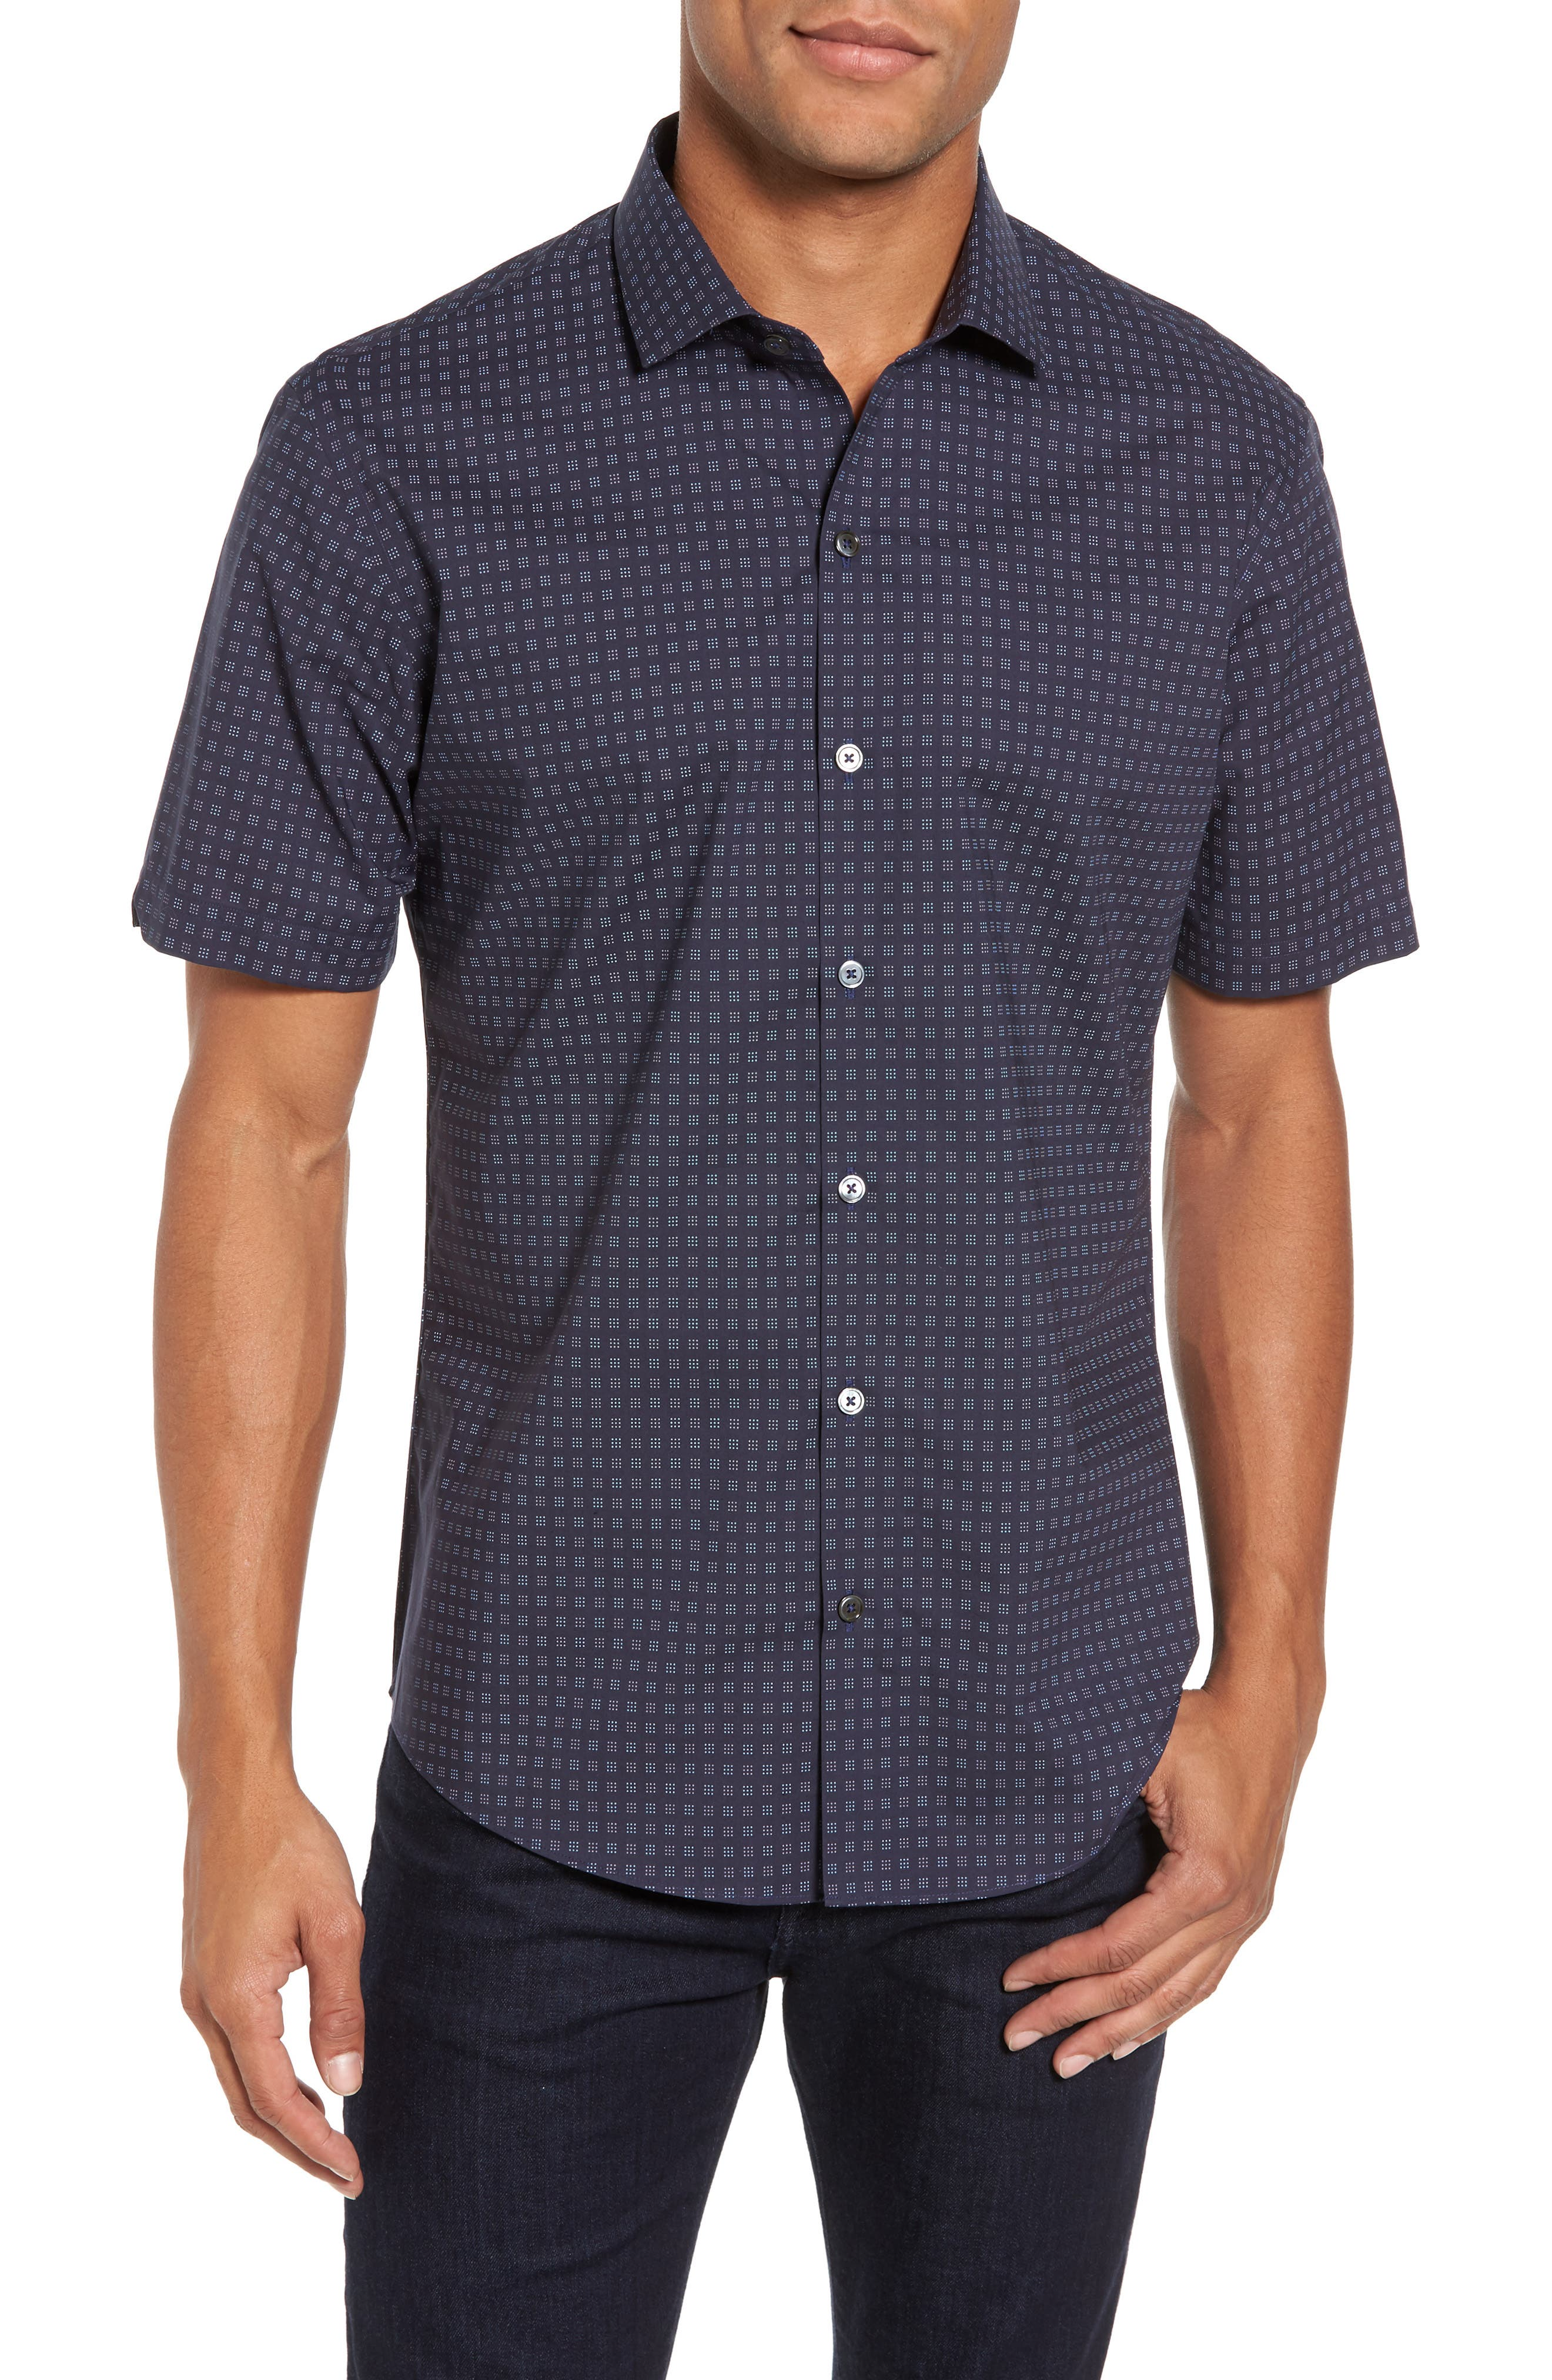 Alternate Image 1 Selected - Zachary Prell Tennant Slim Fit Dot Print Sport Shirt